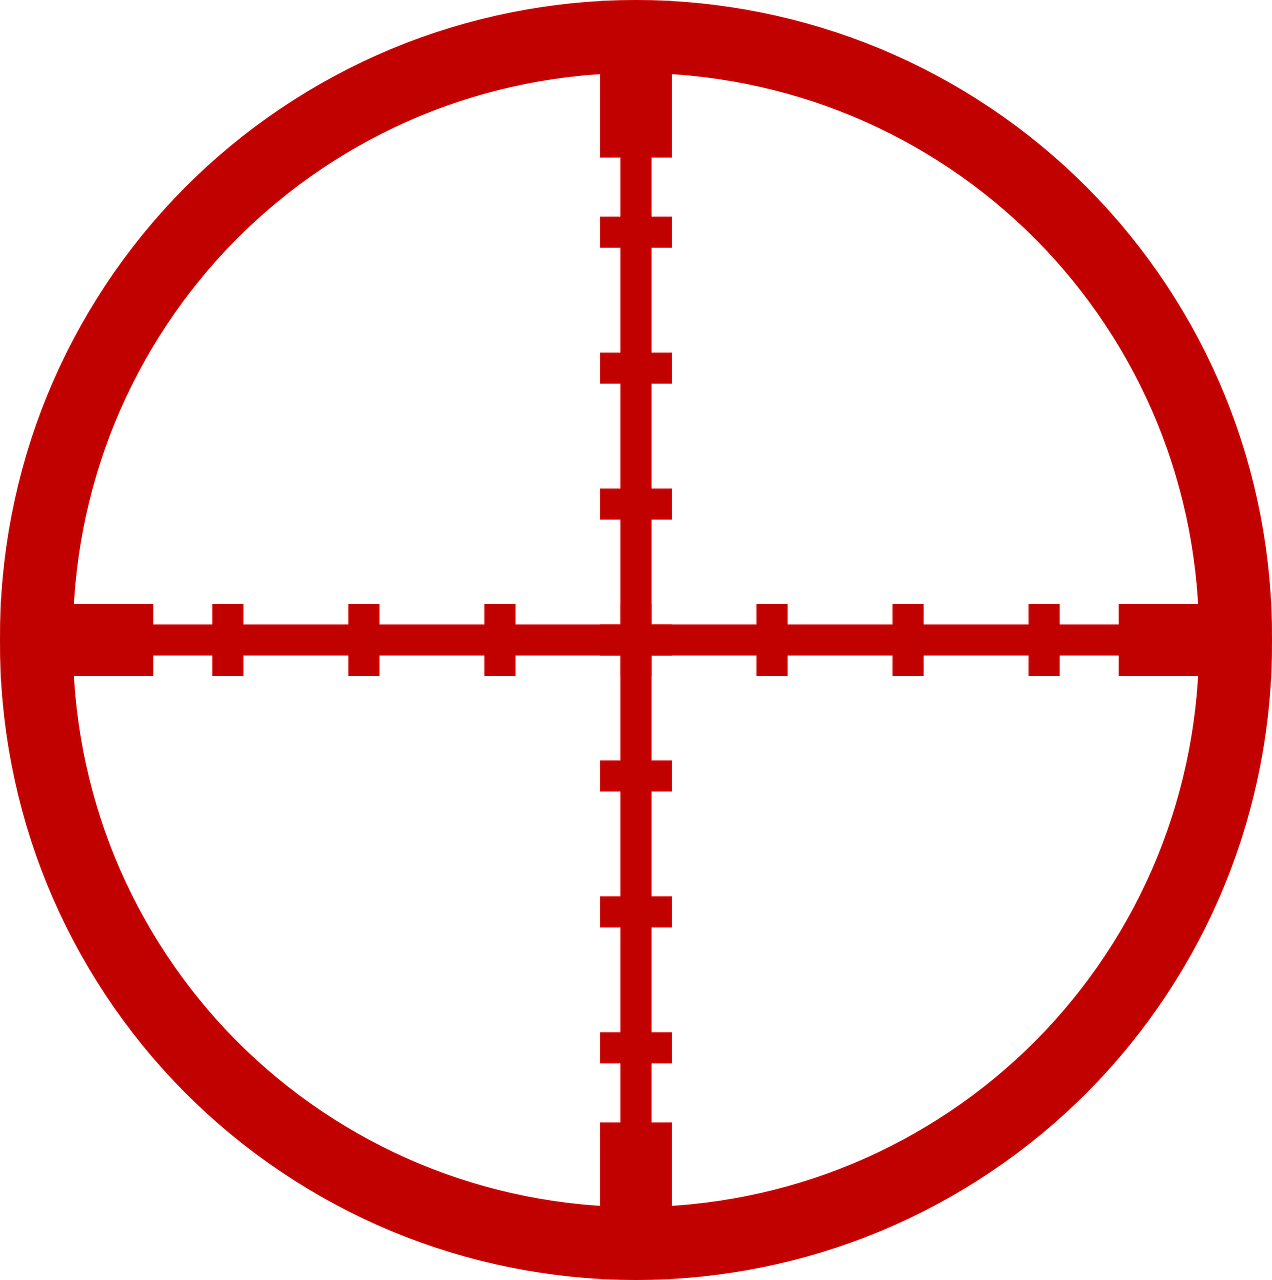 sniper,aim,crosshair,cross hairs,cross wires,shooting,goal,cross line,reticle,centre,center,graticule,red,target,rifle,crosshairs,free vector graphics,free pictures, free photos, free images, royalty free, free illustrations, public domain